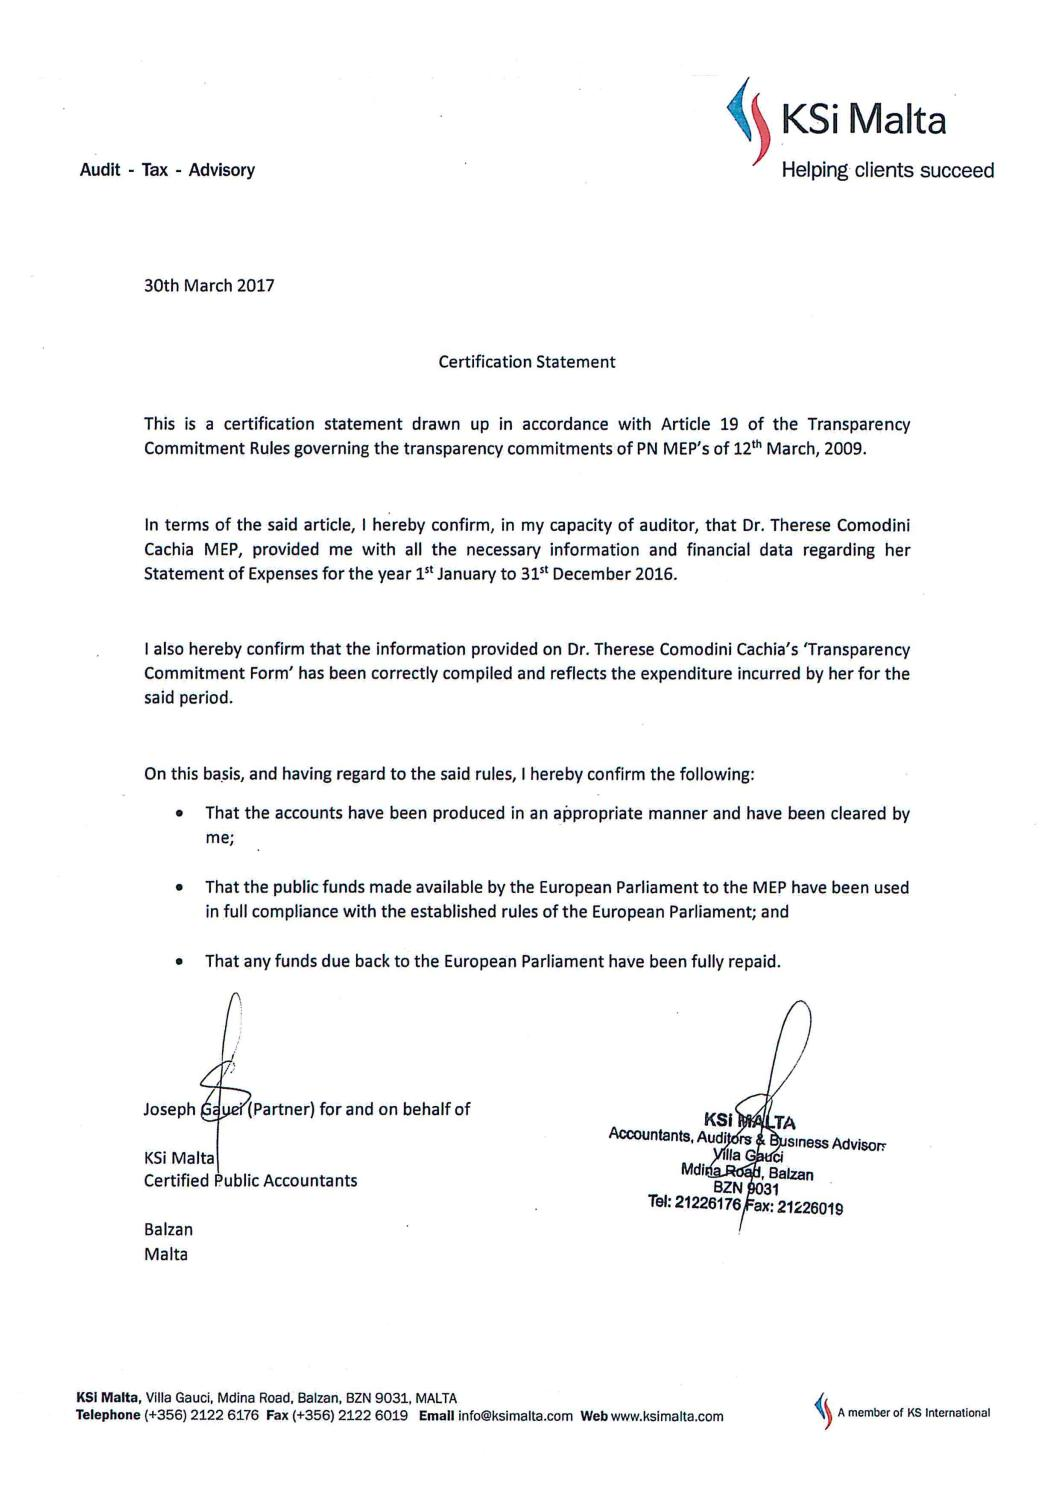 Annual Transparency Commitment Form Certification Statement 2017